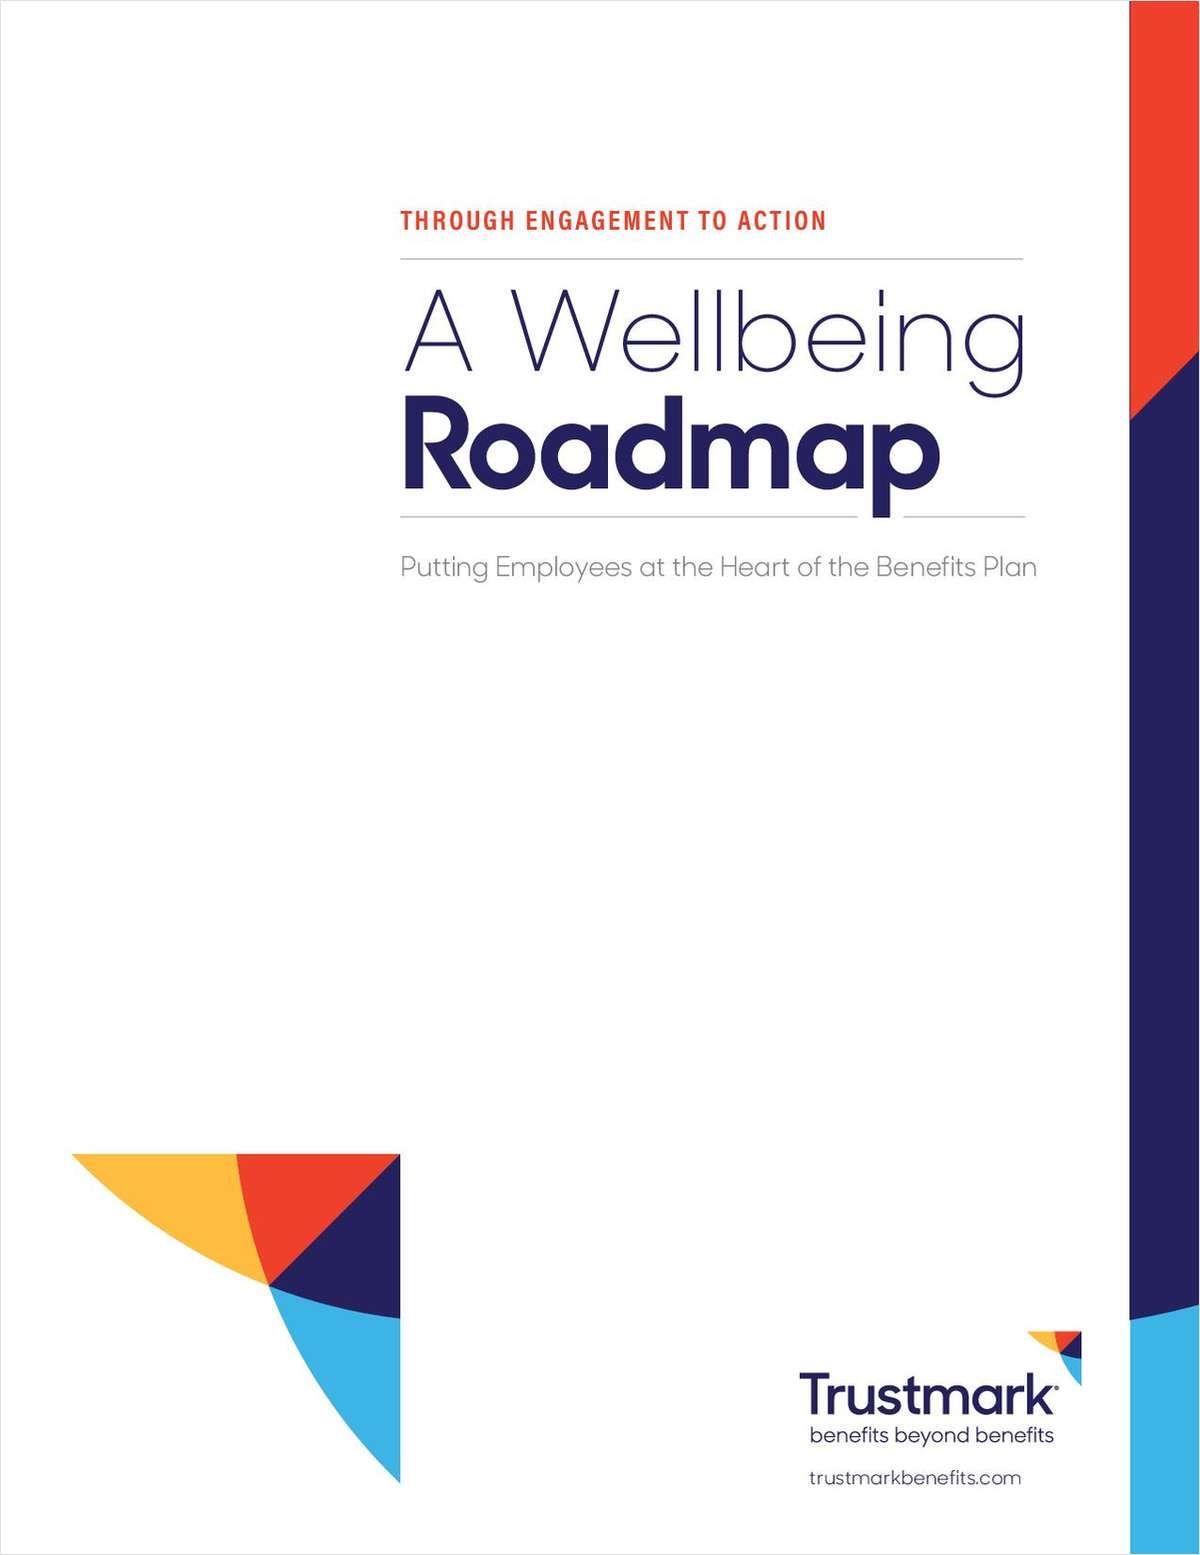 A Wellbeing Roadmap: Putting Employees at the Heart of the Benefits Plan